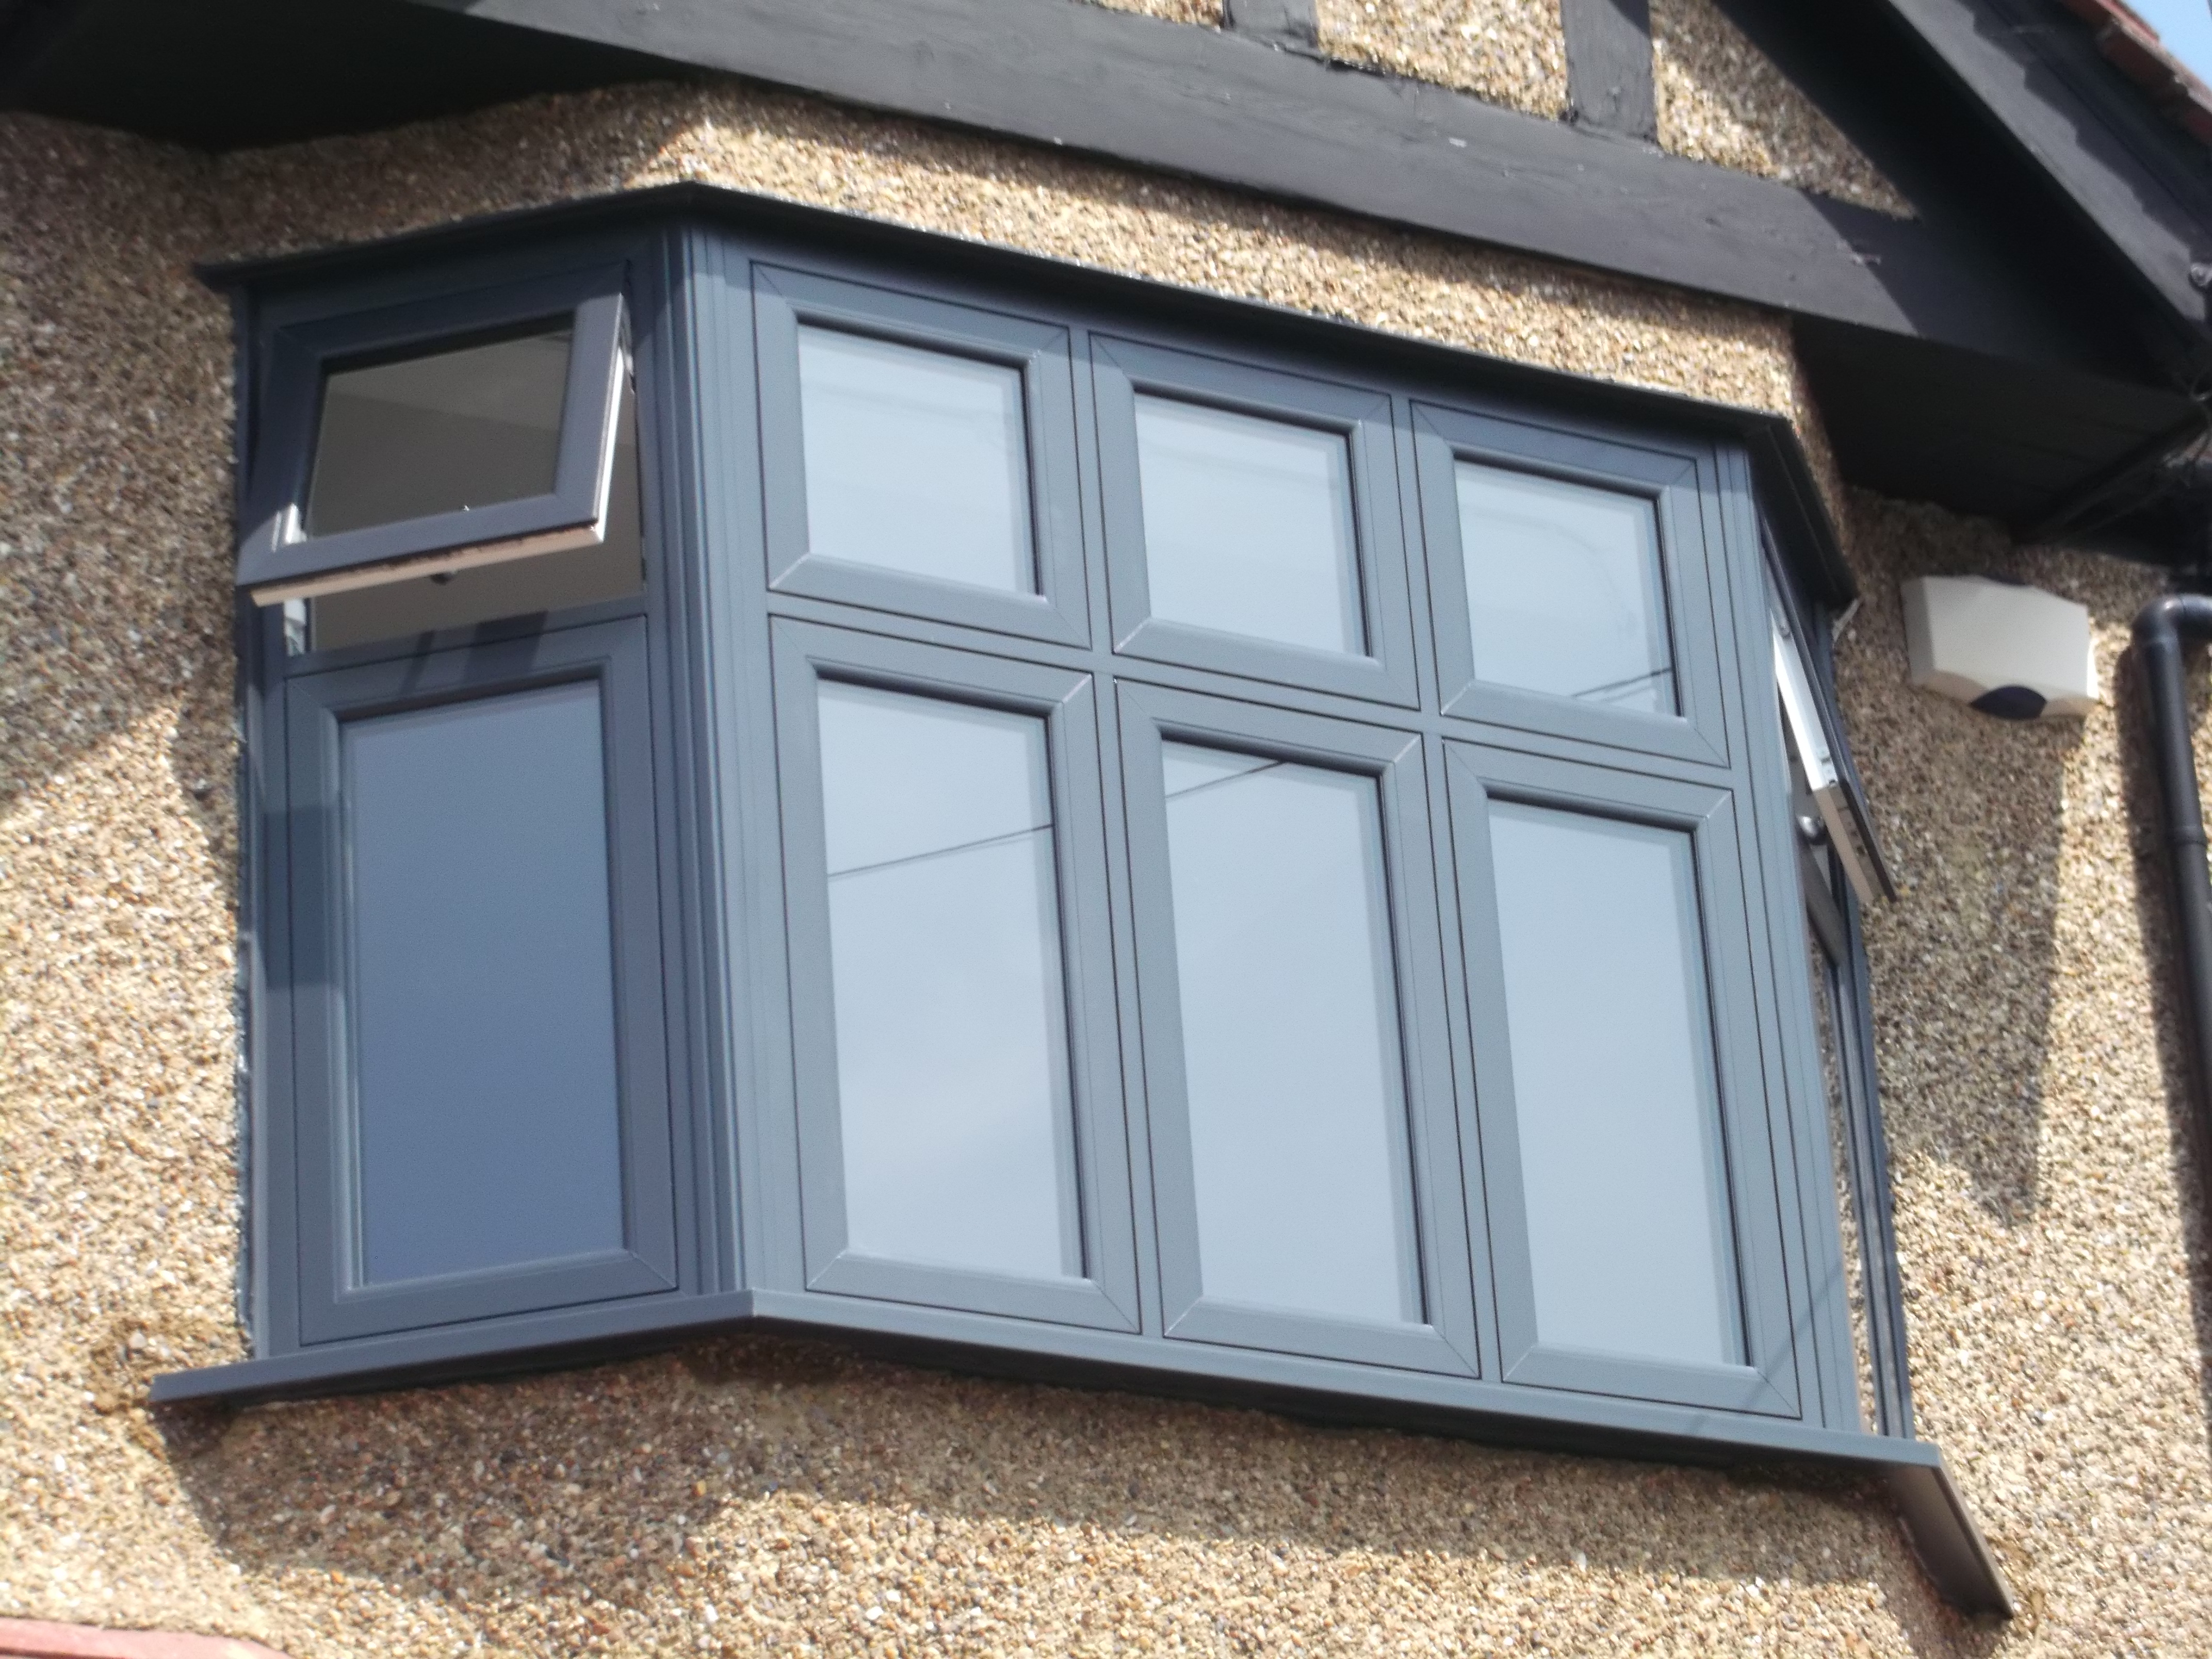 Pvcu windows in south london upvc windows south london for Pvc window frame